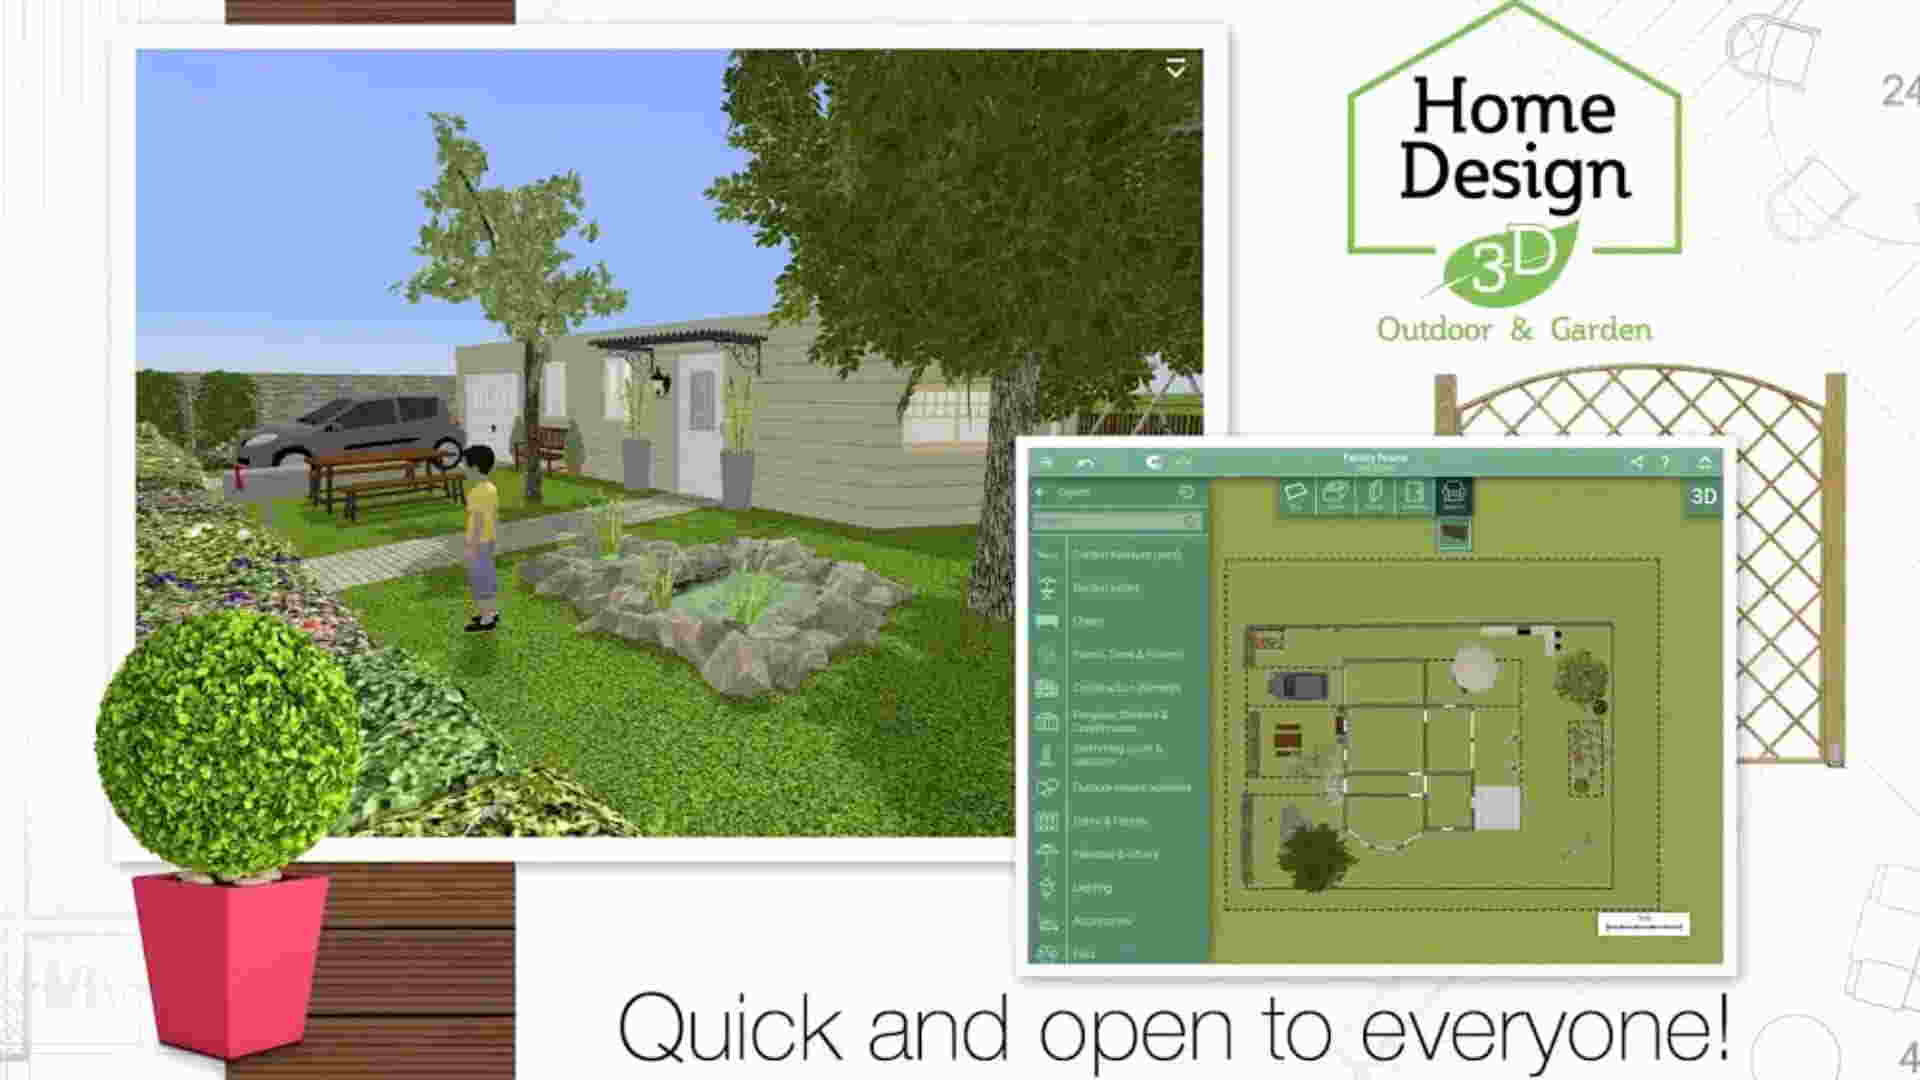 Home Design 3D OutdoorGarden